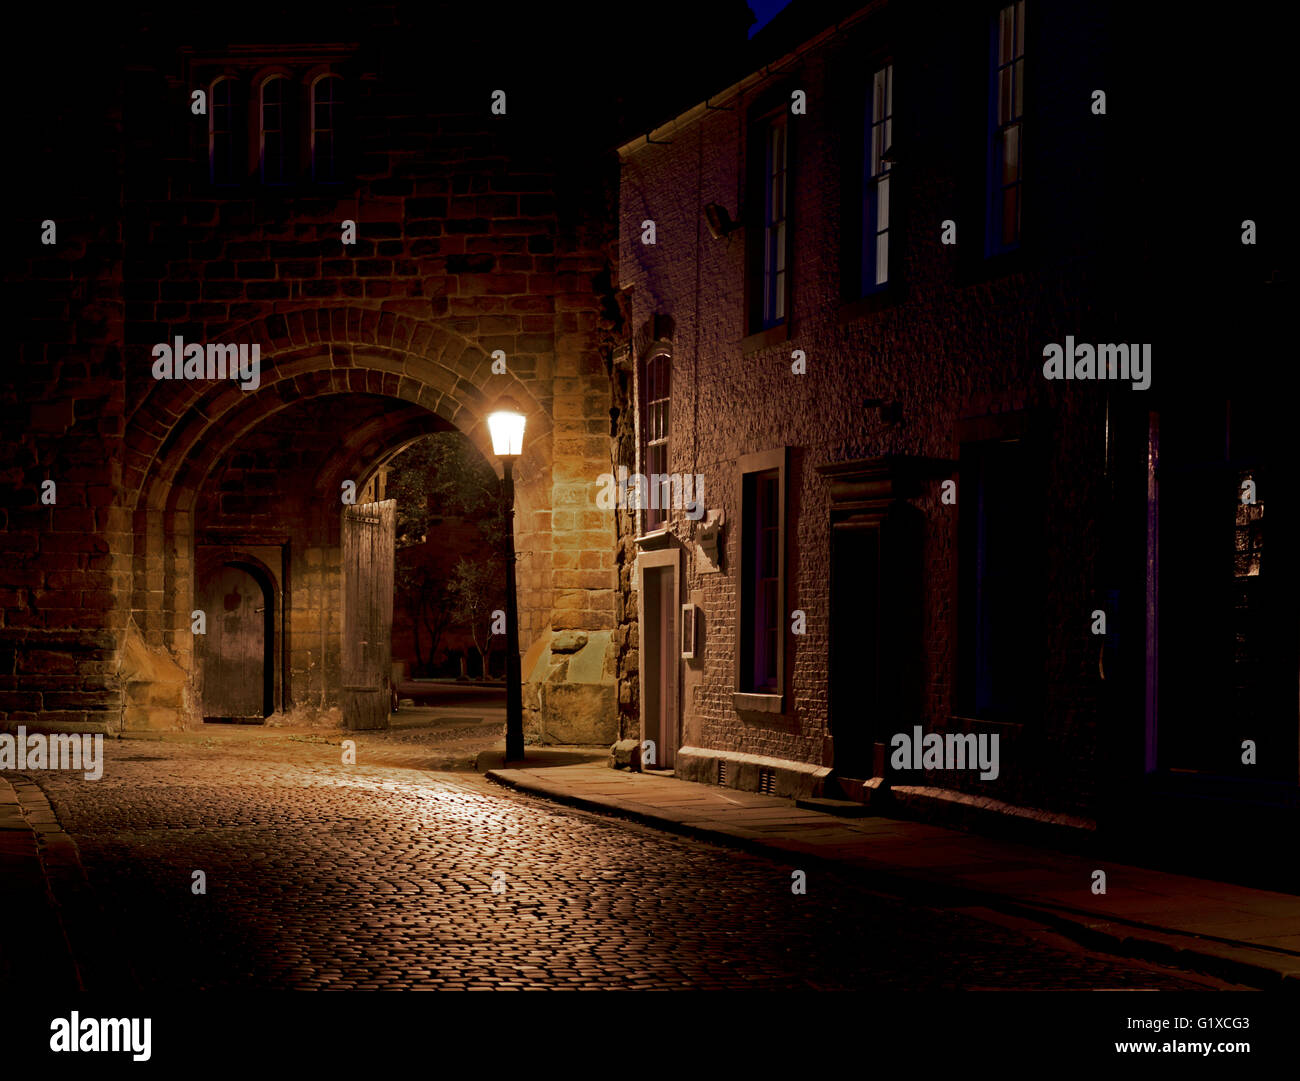 one-of-the-arched-entrances-to-the-grounds-of-carlisle-cathedral-cumbria-G1XCG3.jpg